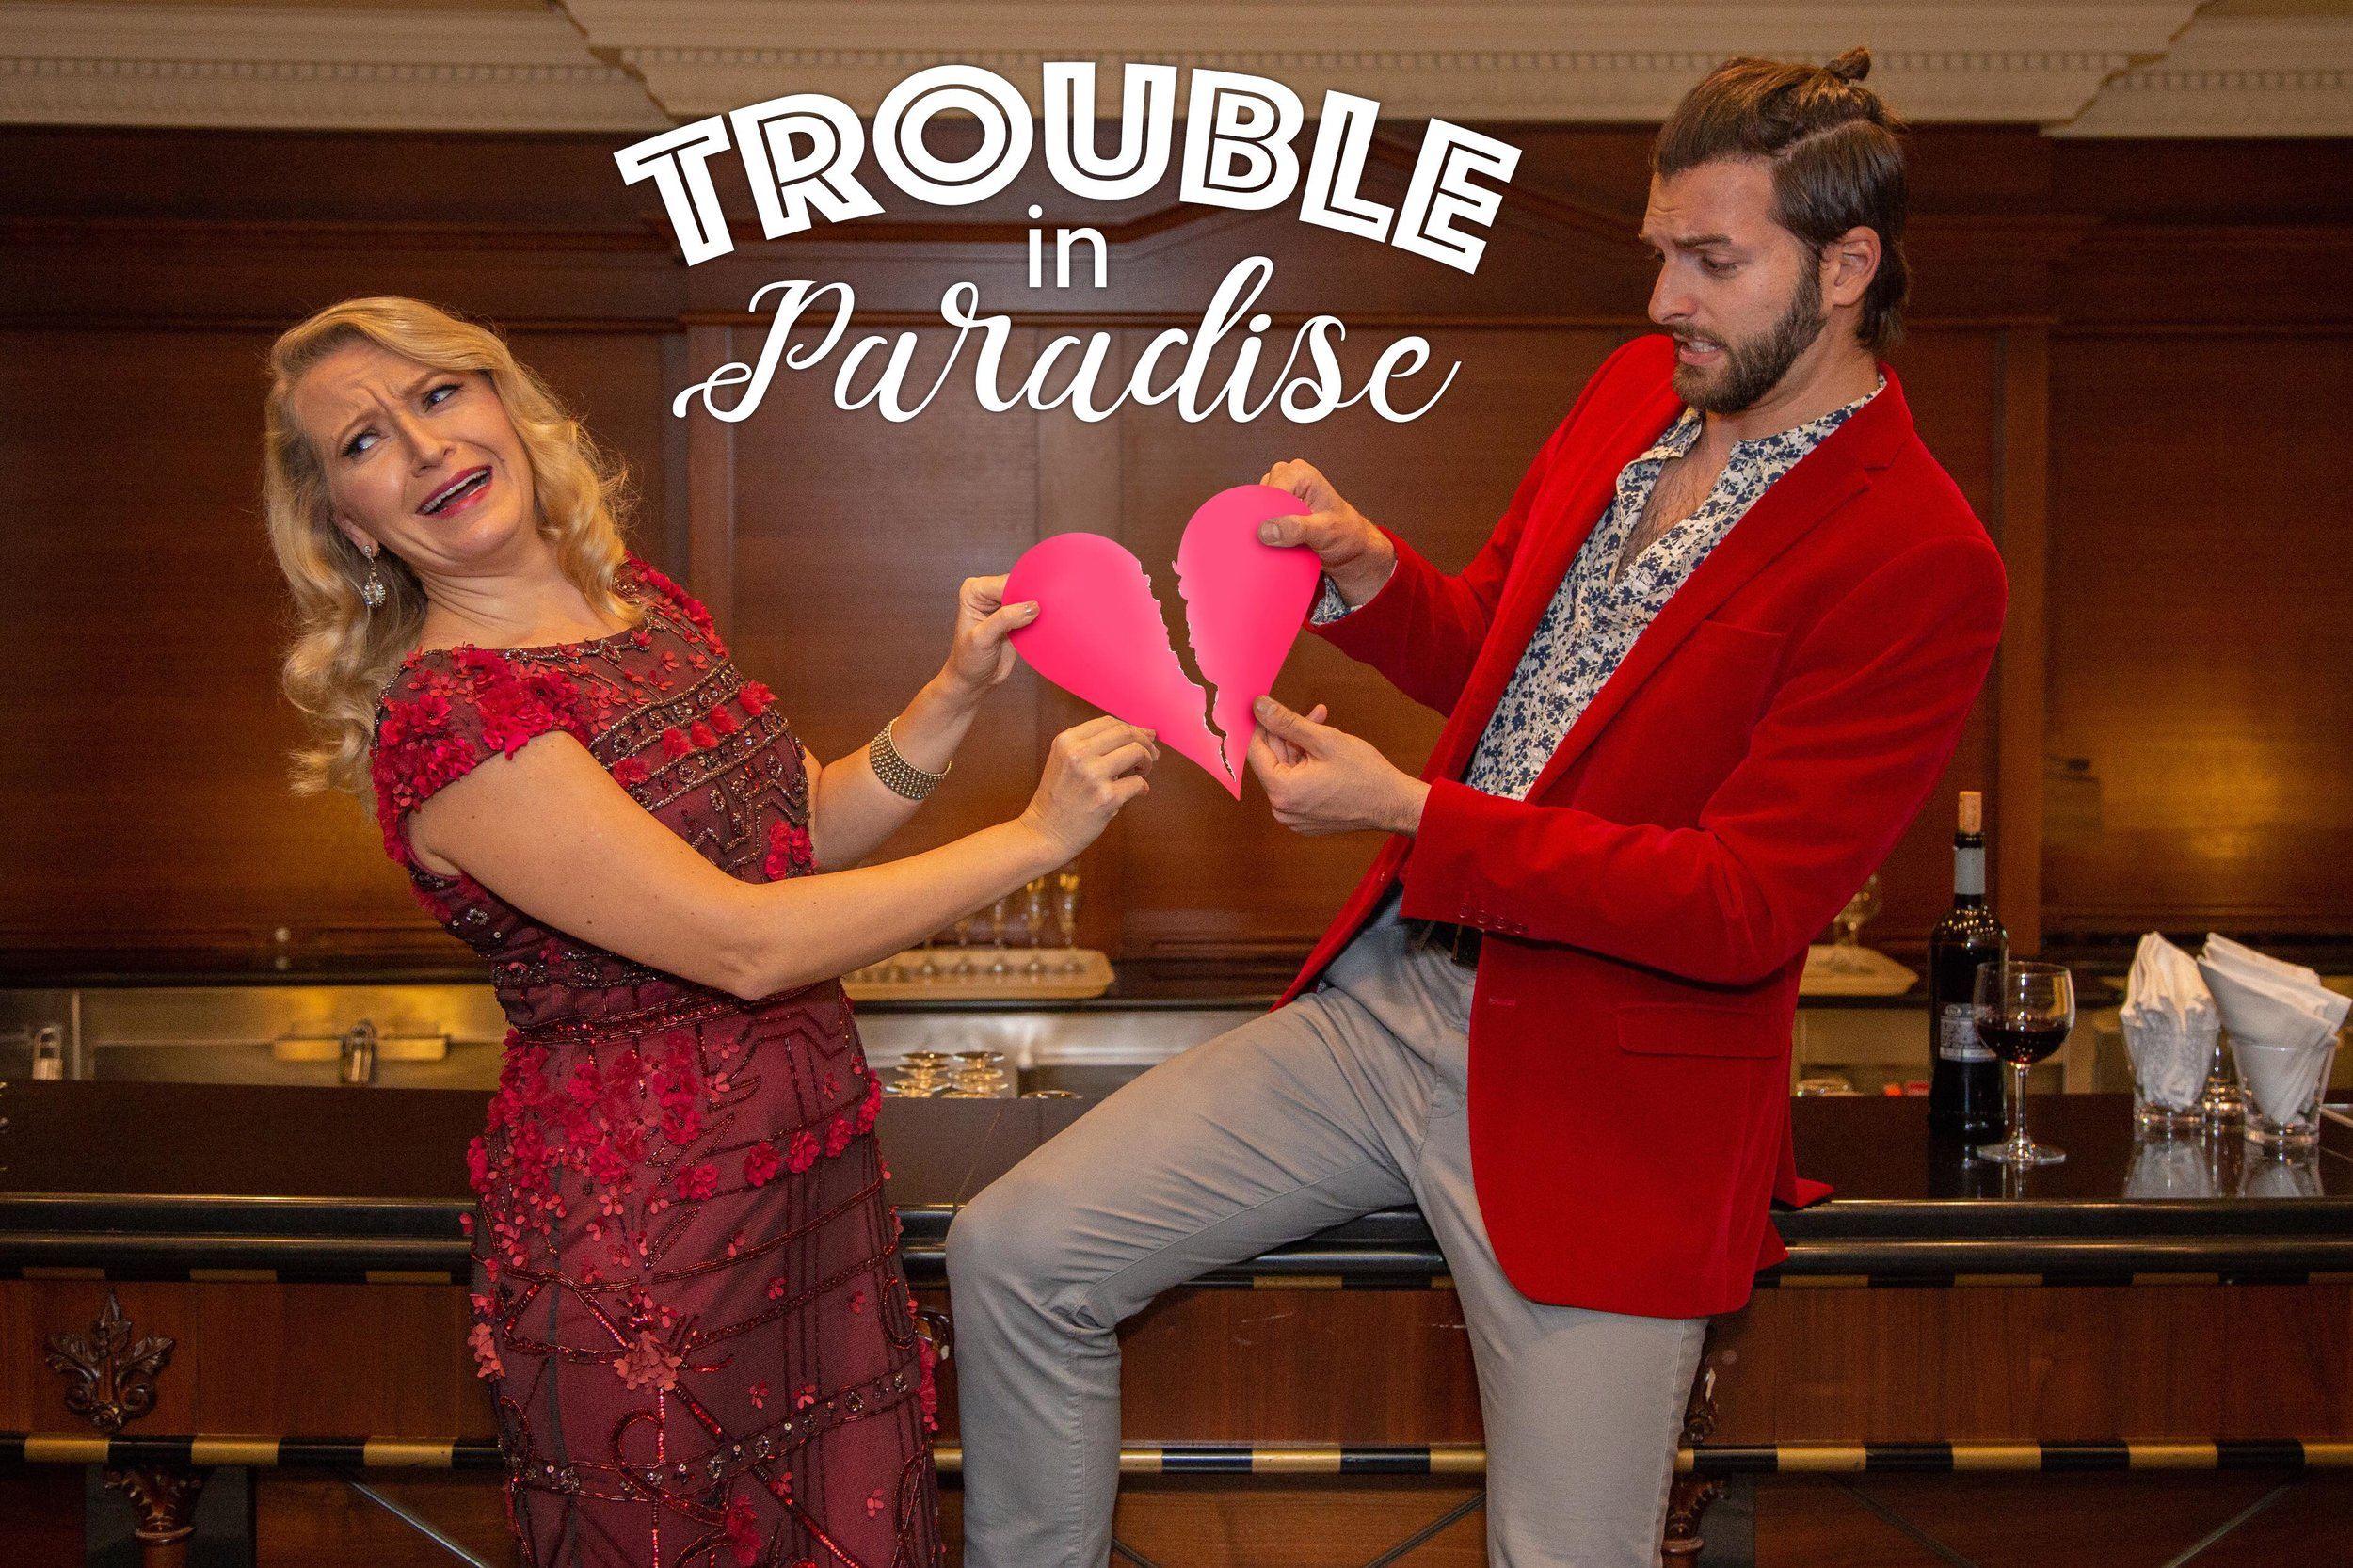 Trouble in Paradise - An original cabaret featuring Brad Baron and Tanya Roberts. First performed aboard the Azamara Quest.